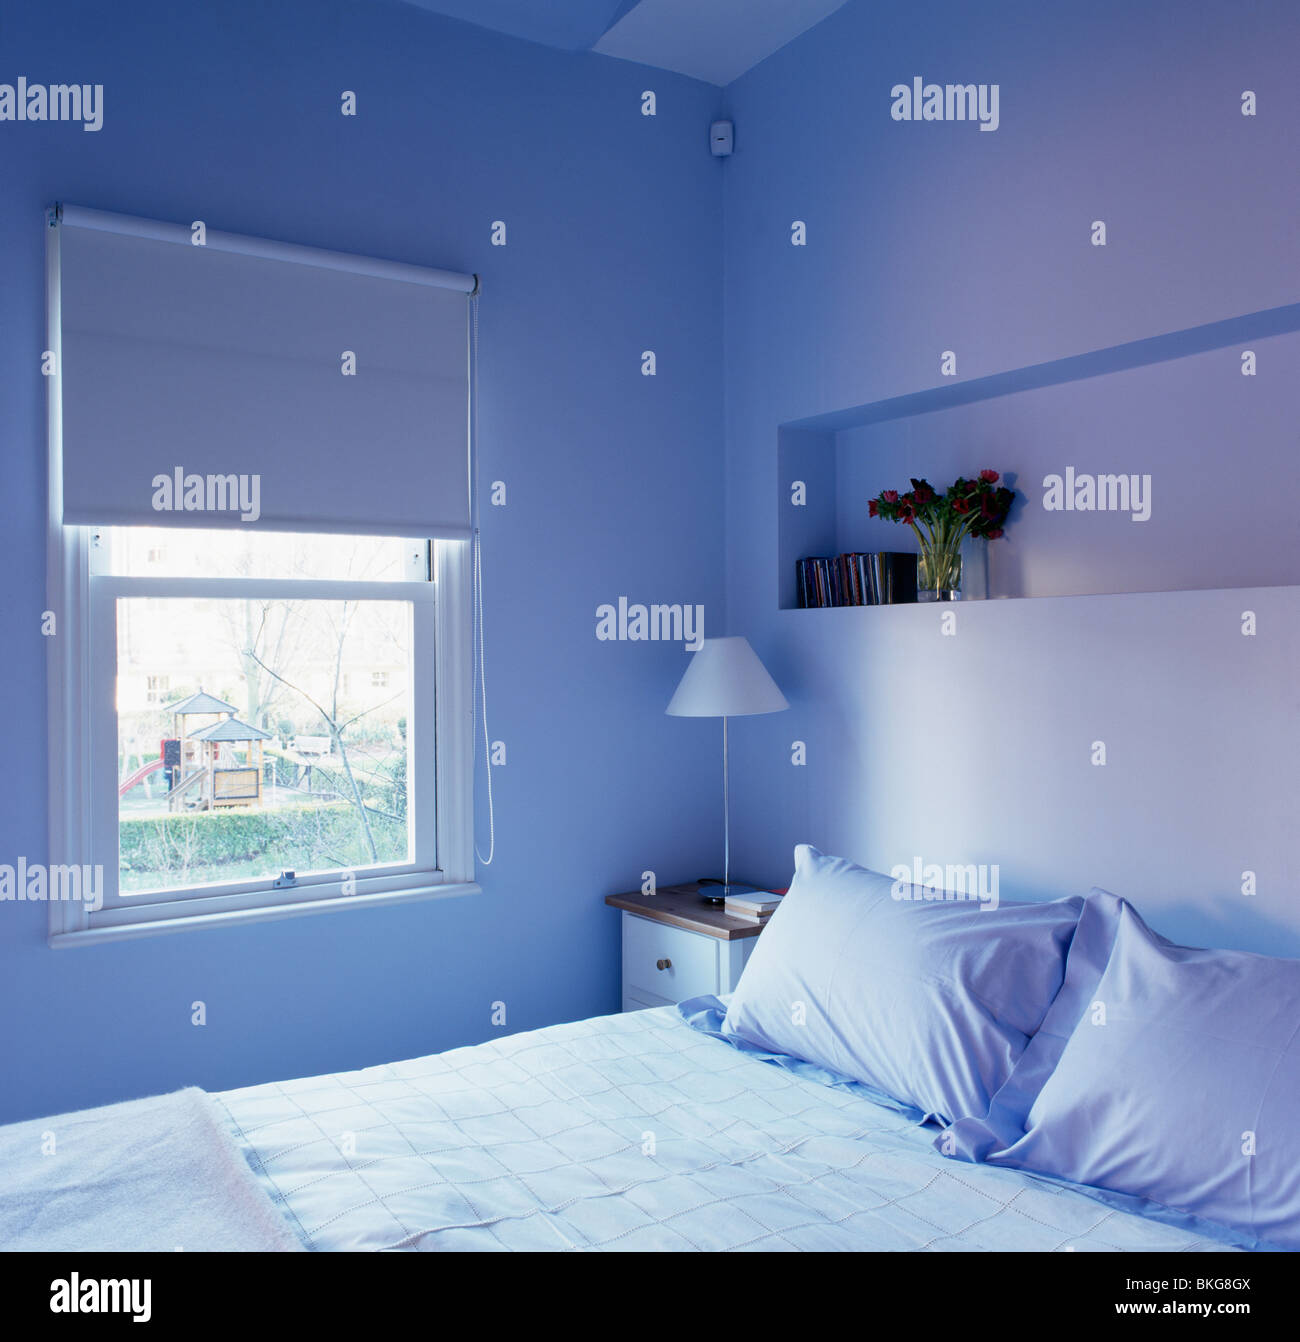 Modern Blue Bedrooms Blue Blind On Window In Modern Blue Apartment Bedroom With Alcove